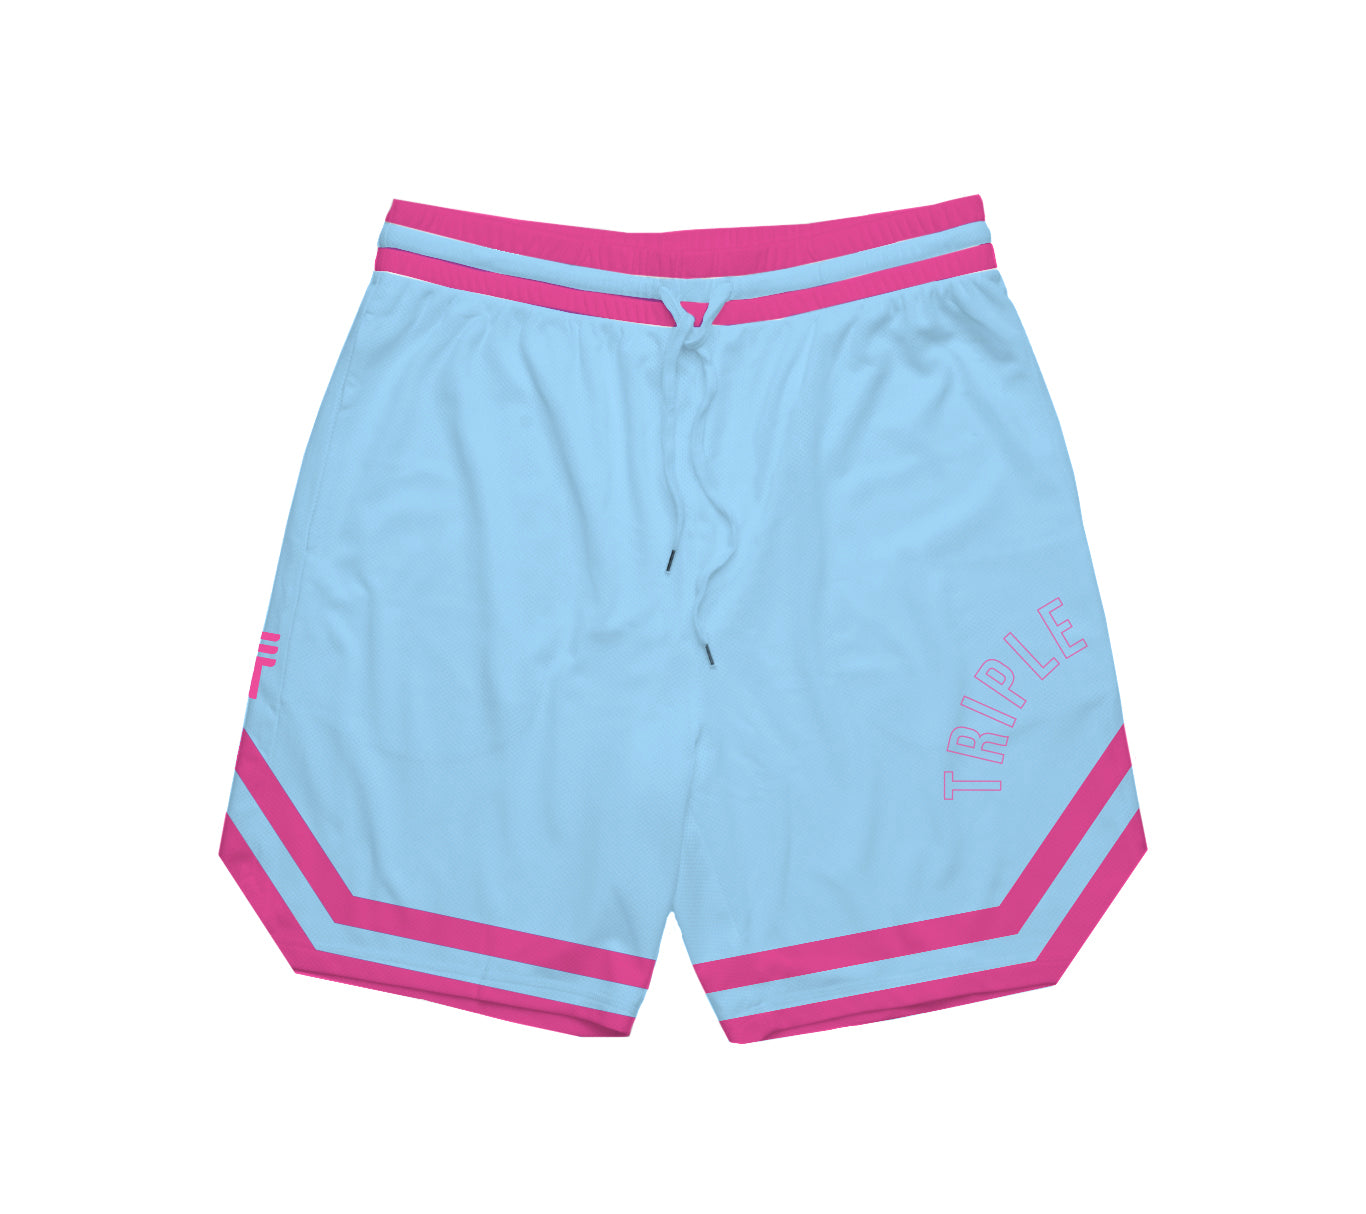 TRIPLE THREAT OG SHORTS - LIGHT BLUE & PINK